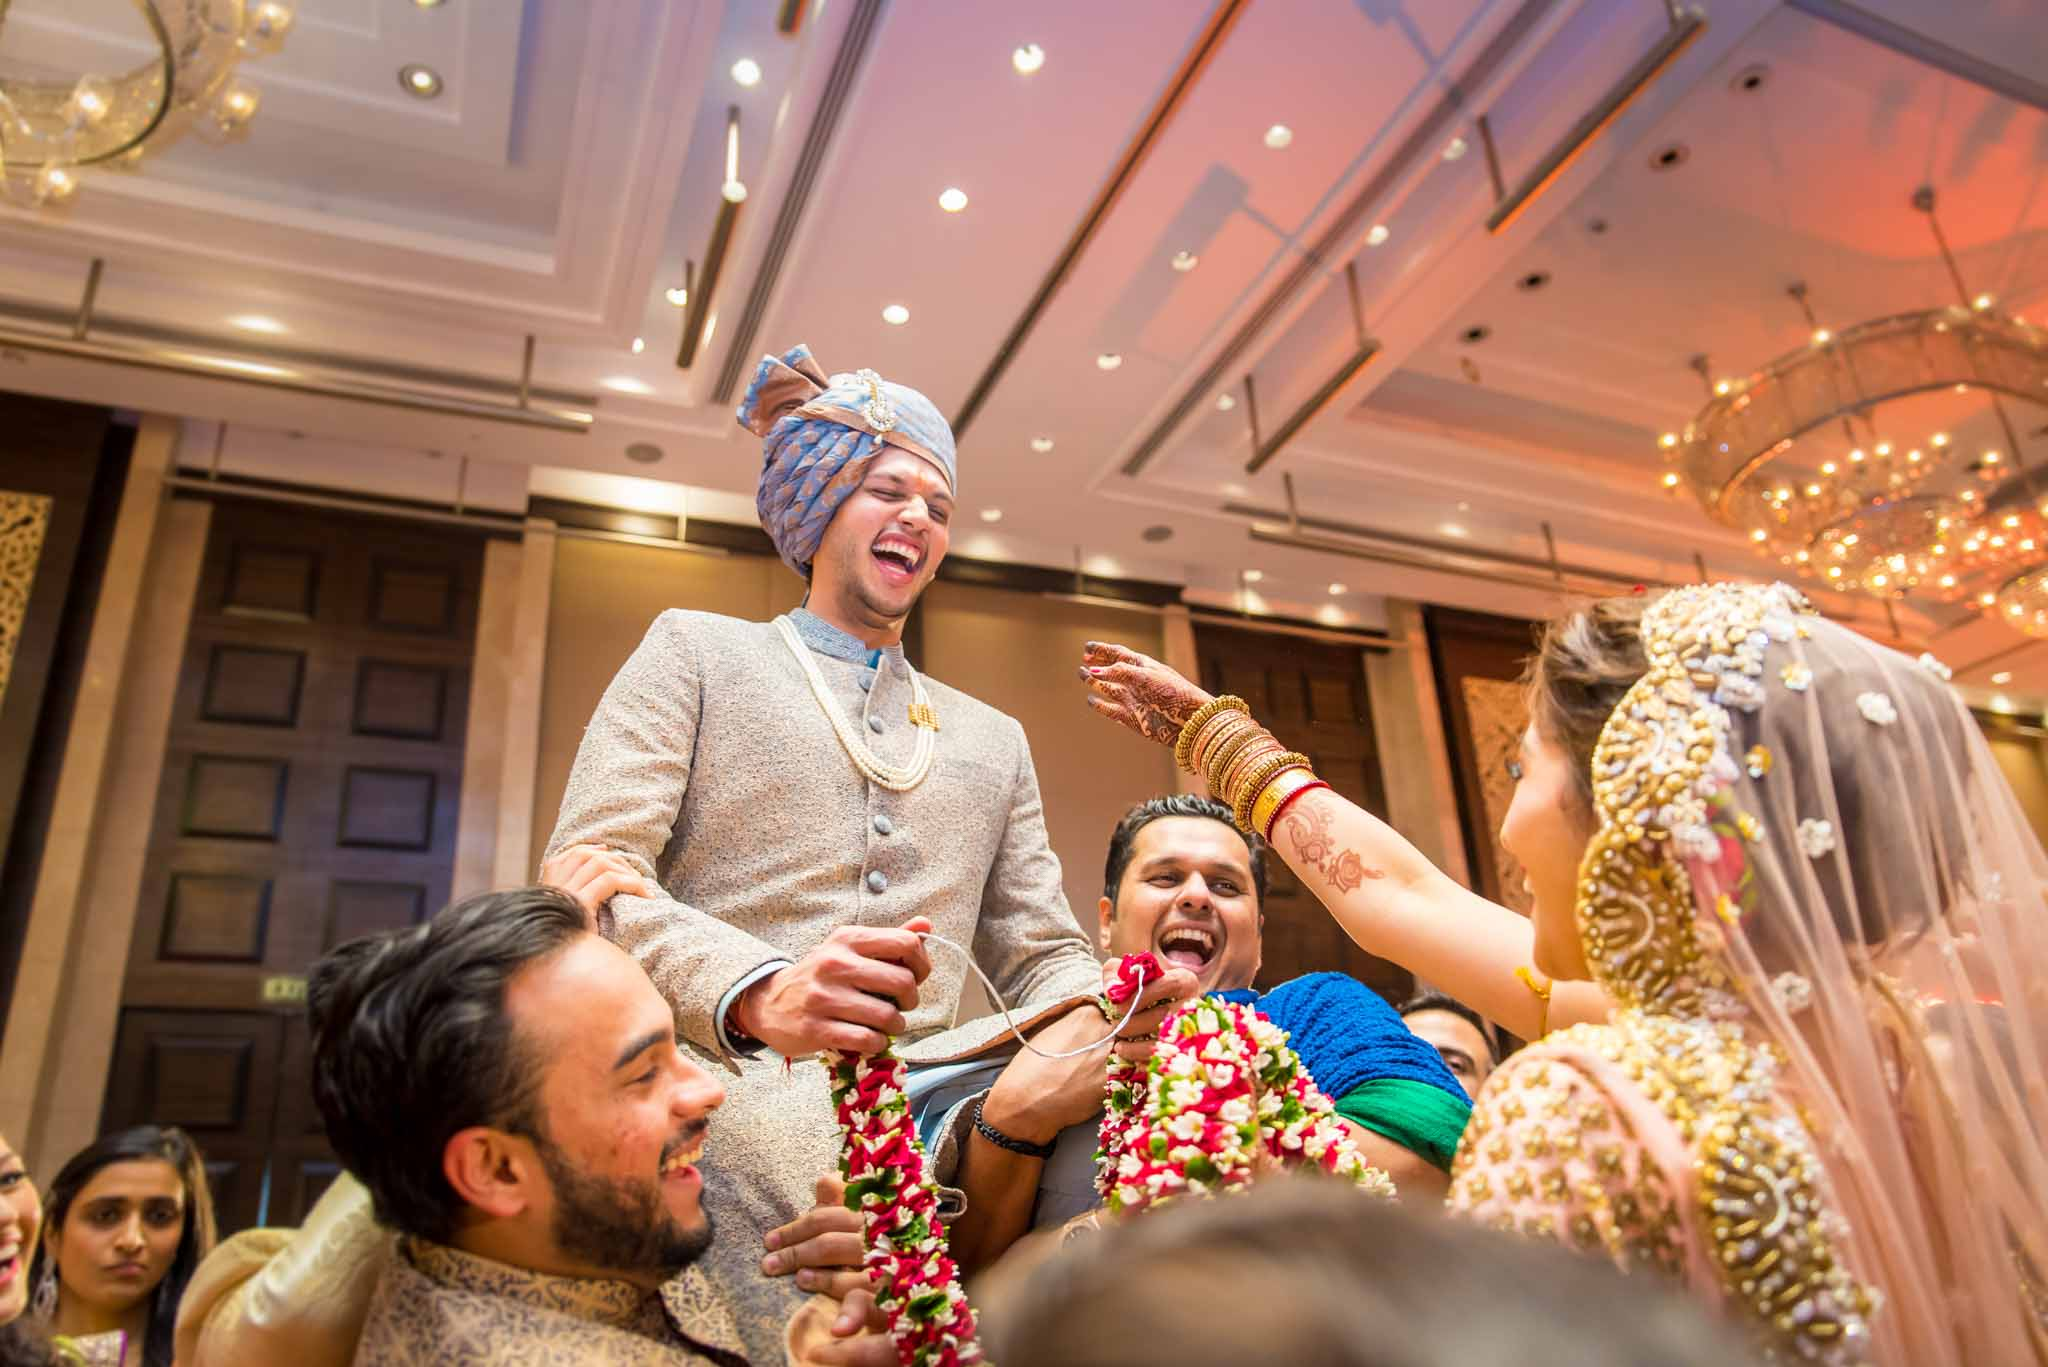 StRegis-Palladium-Mumbai-Candid-Wedding-Photography-33